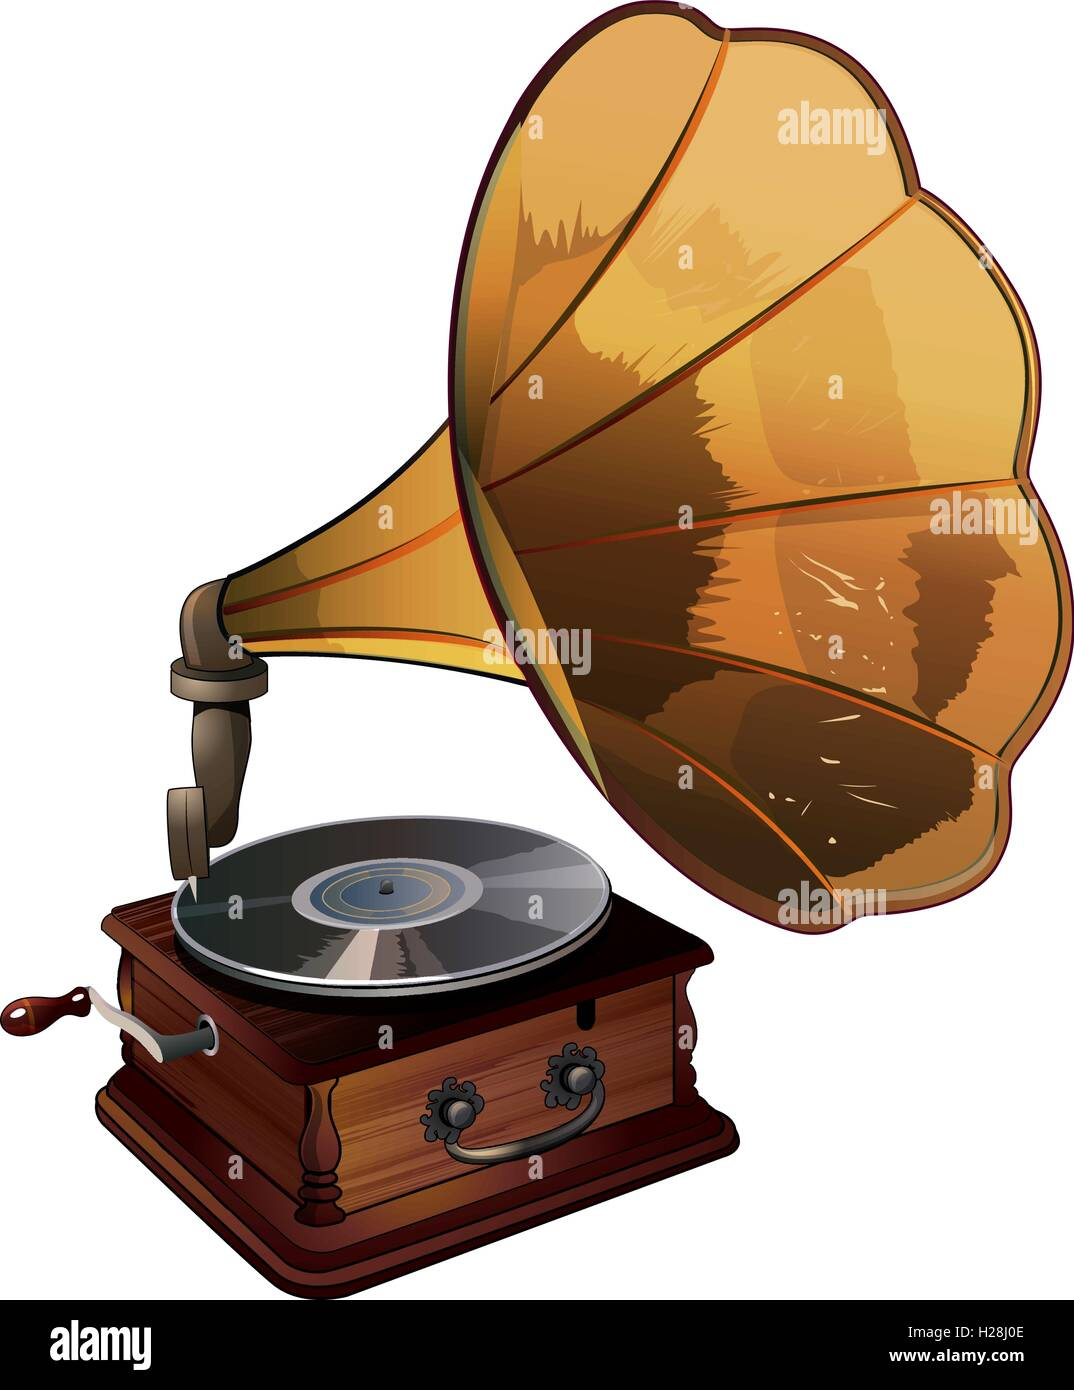 gramophone vector illustration stock vector image art alamy https www alamy com stock photo gramophone vector illustration 121891630 html